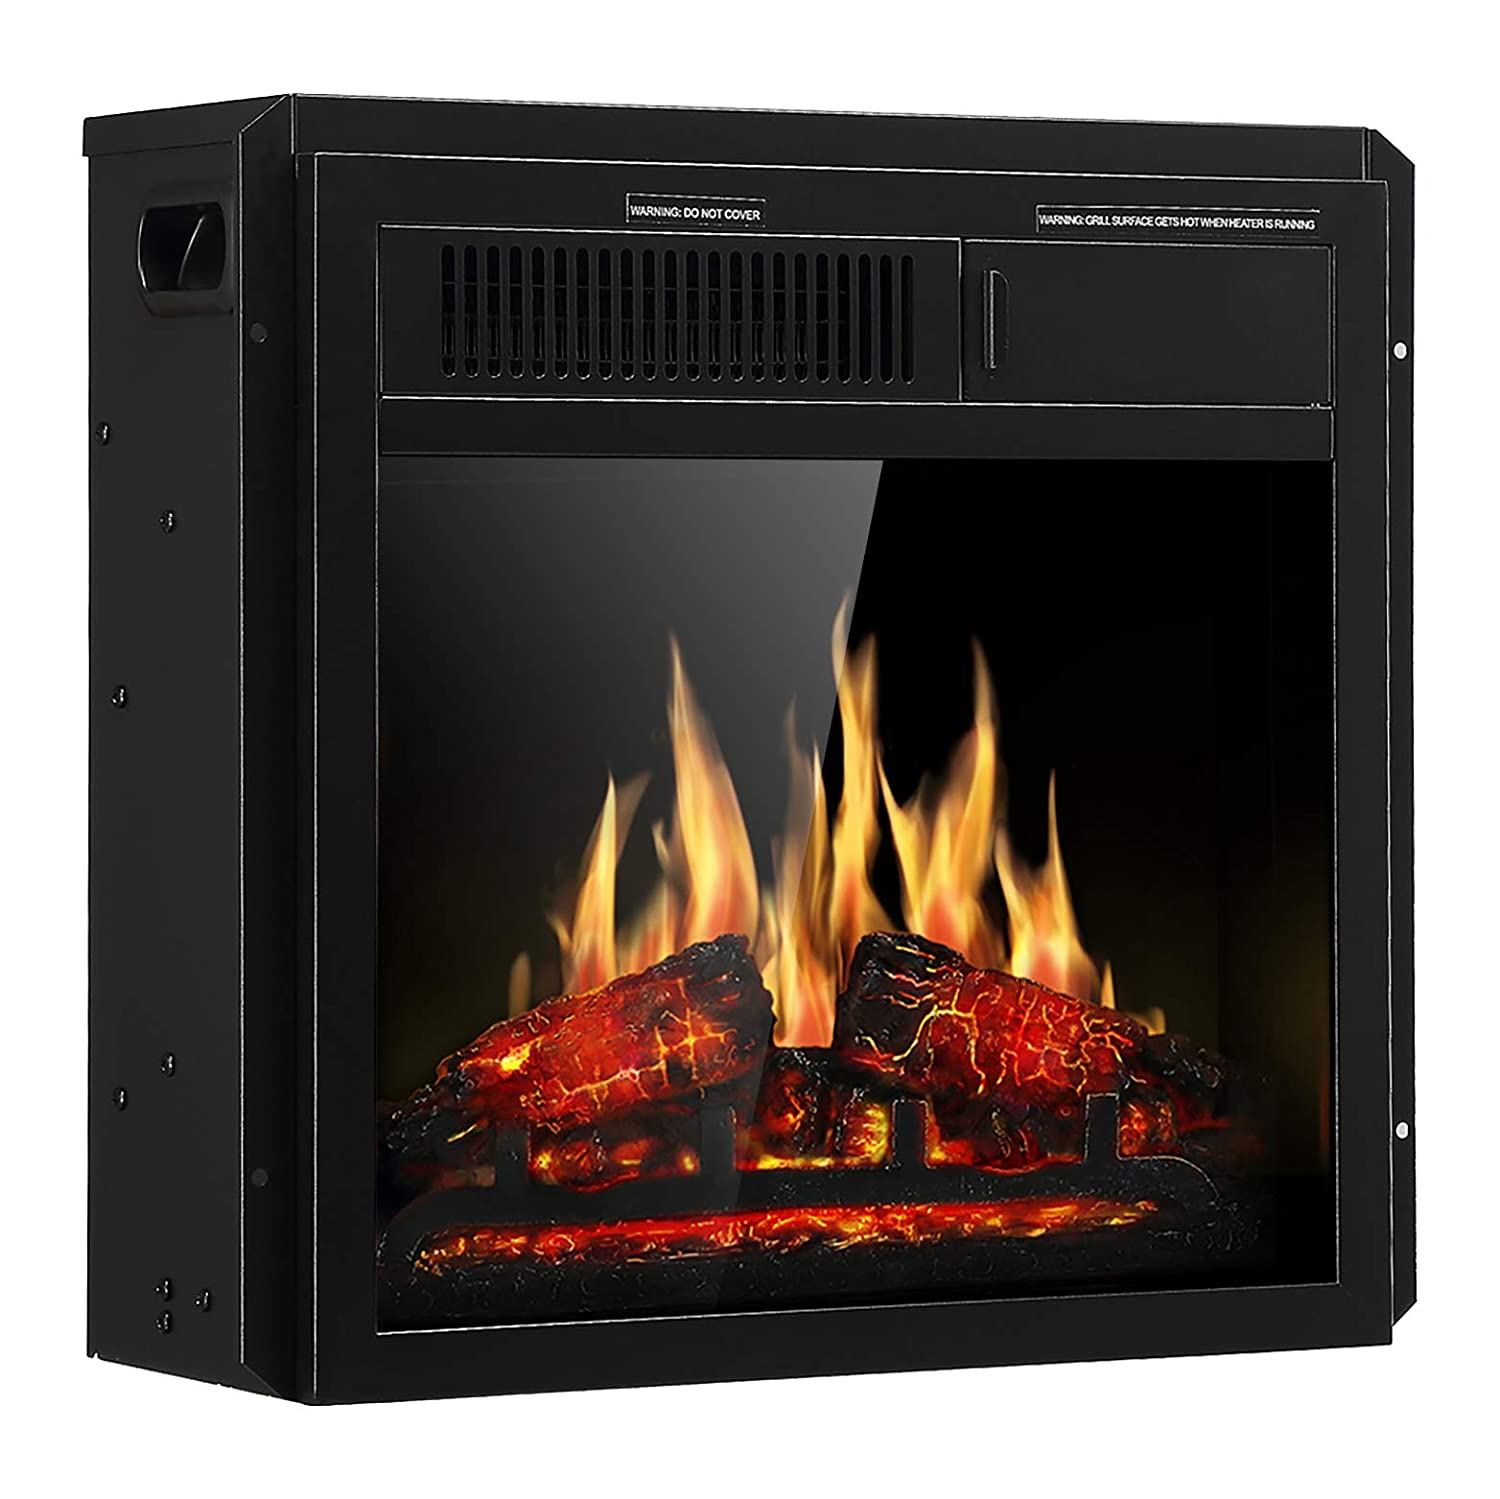 JAMFLY Electric Fireplace Insert 18-inch Freestanding Heater with 7 Log Hearth Flame Settings and Remote Control,1500w,Black